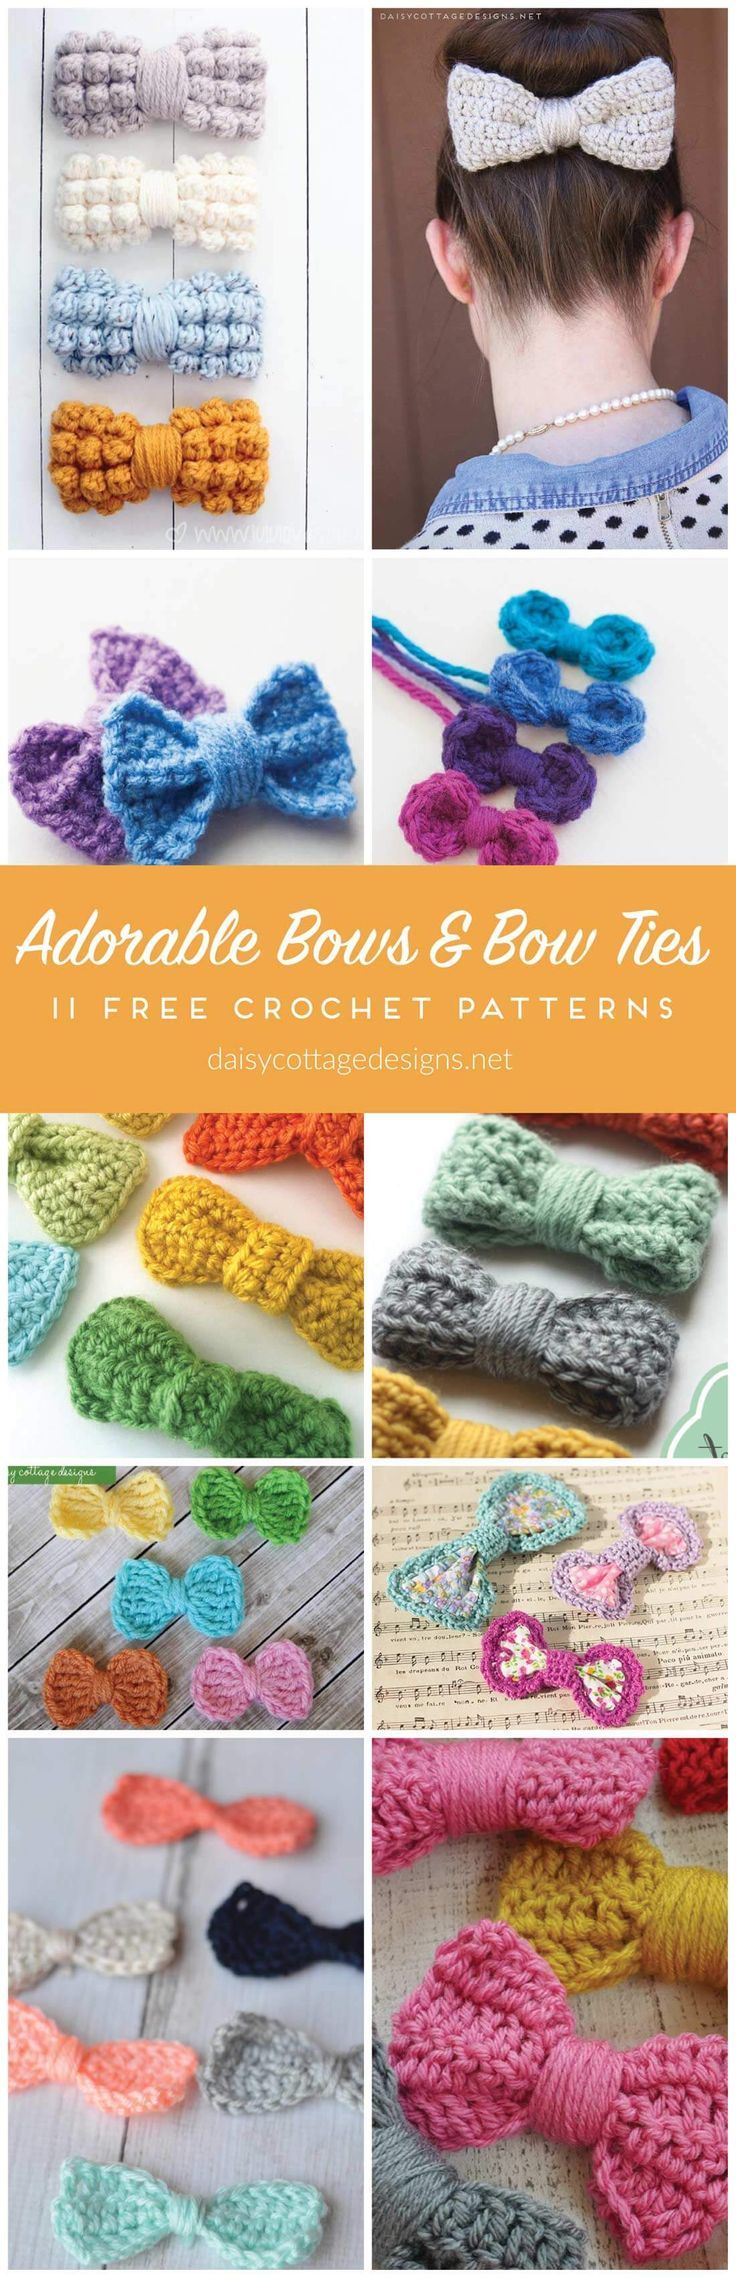 Crochet Bow and Bow Tie Pattern Collection from